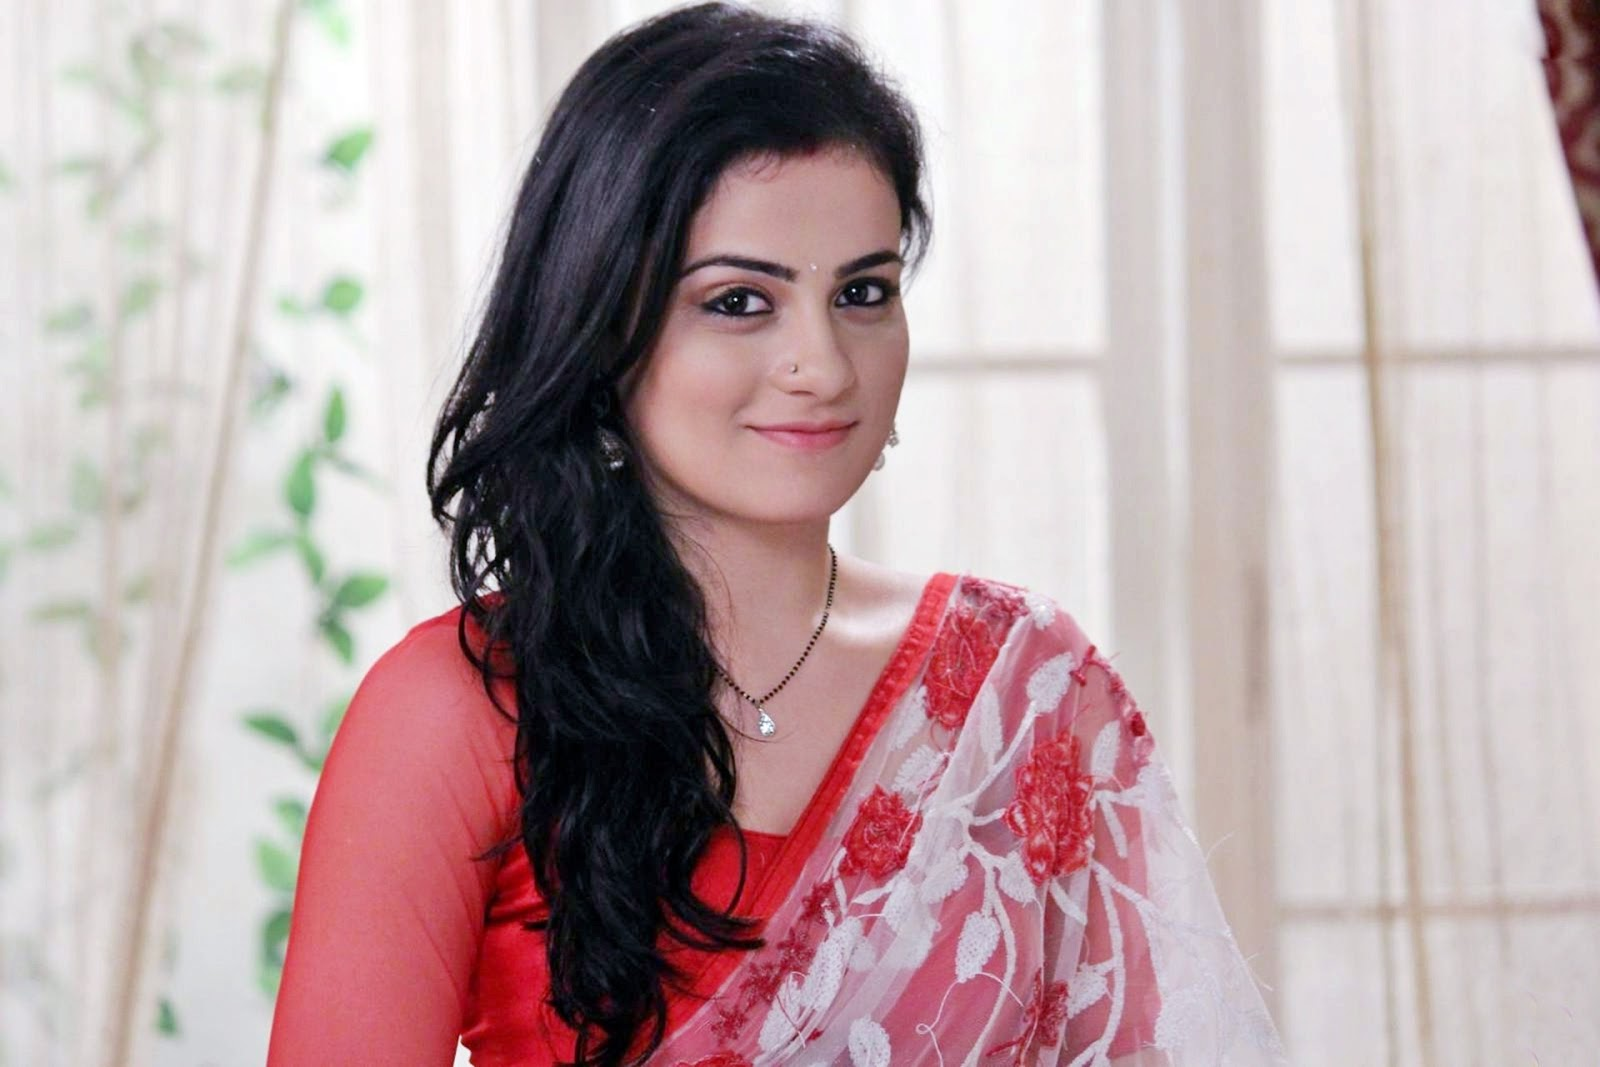 Radhika madan hd images of colors tv serial pictures to pin on - Meri Aashiqui Tumse Hi Serial Radhika Madan Hd Wallpapers